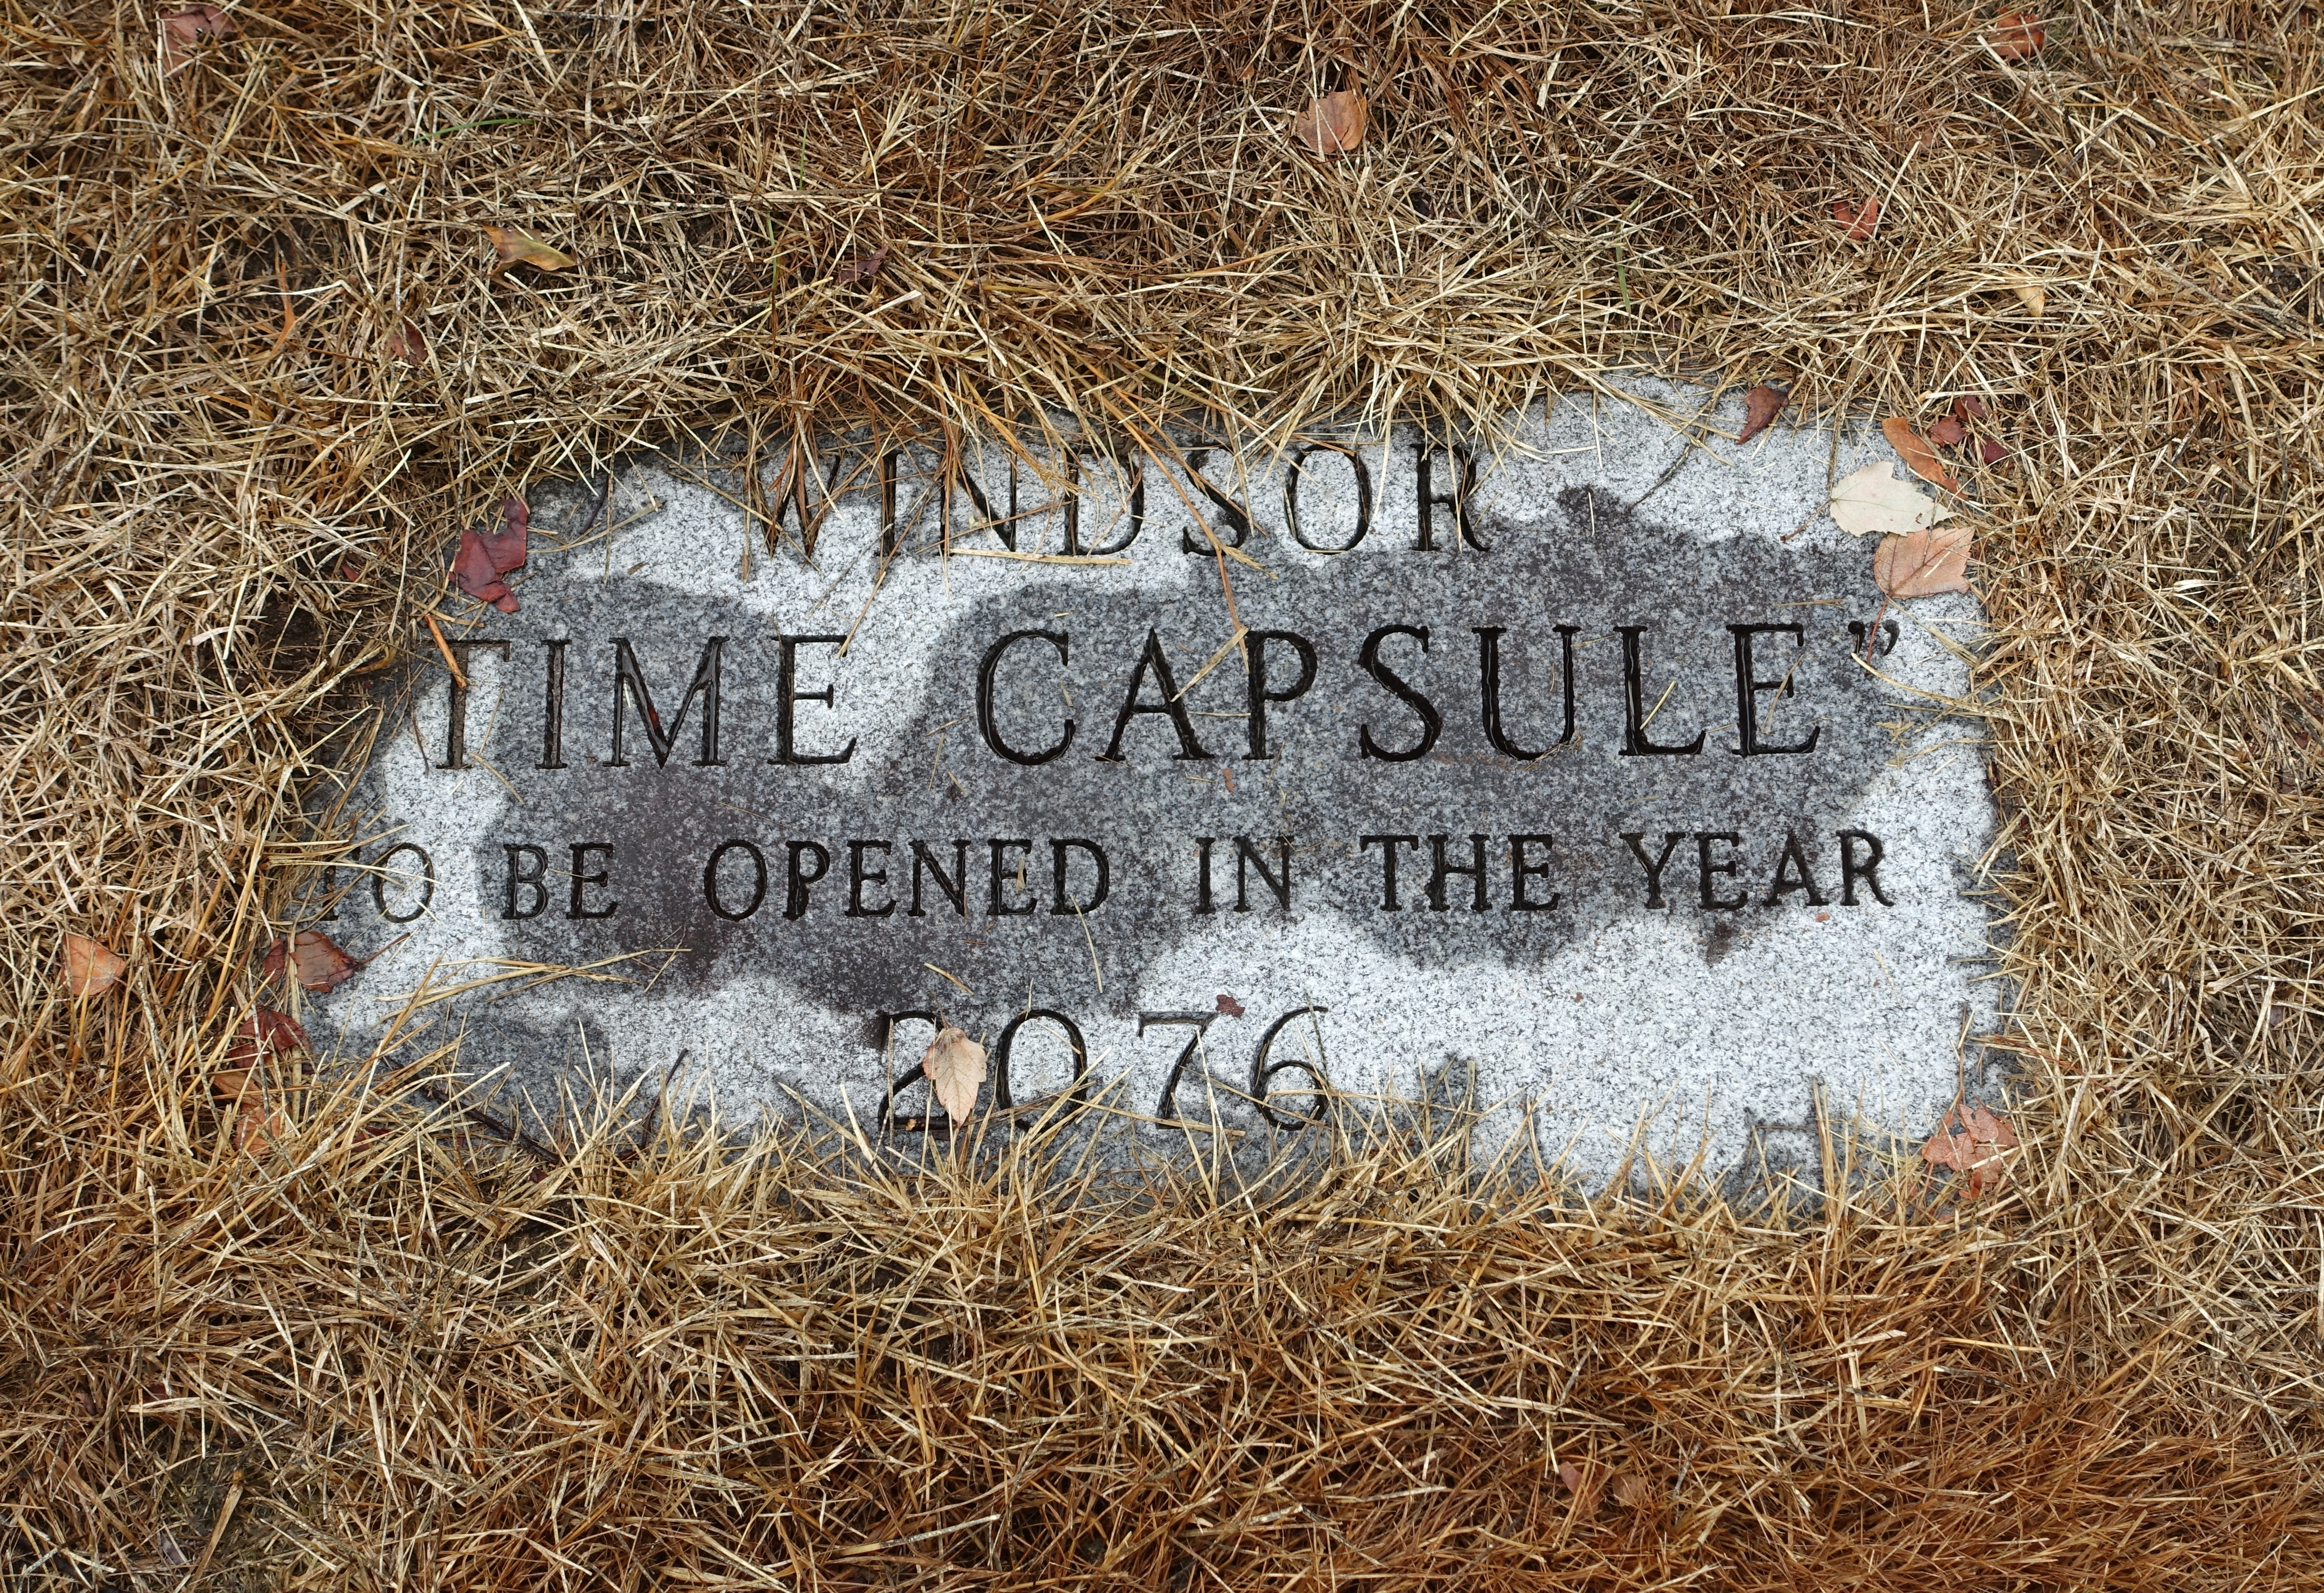 File:Windsor Time Capsule, to be opened in the year 2076 - Palisado Green